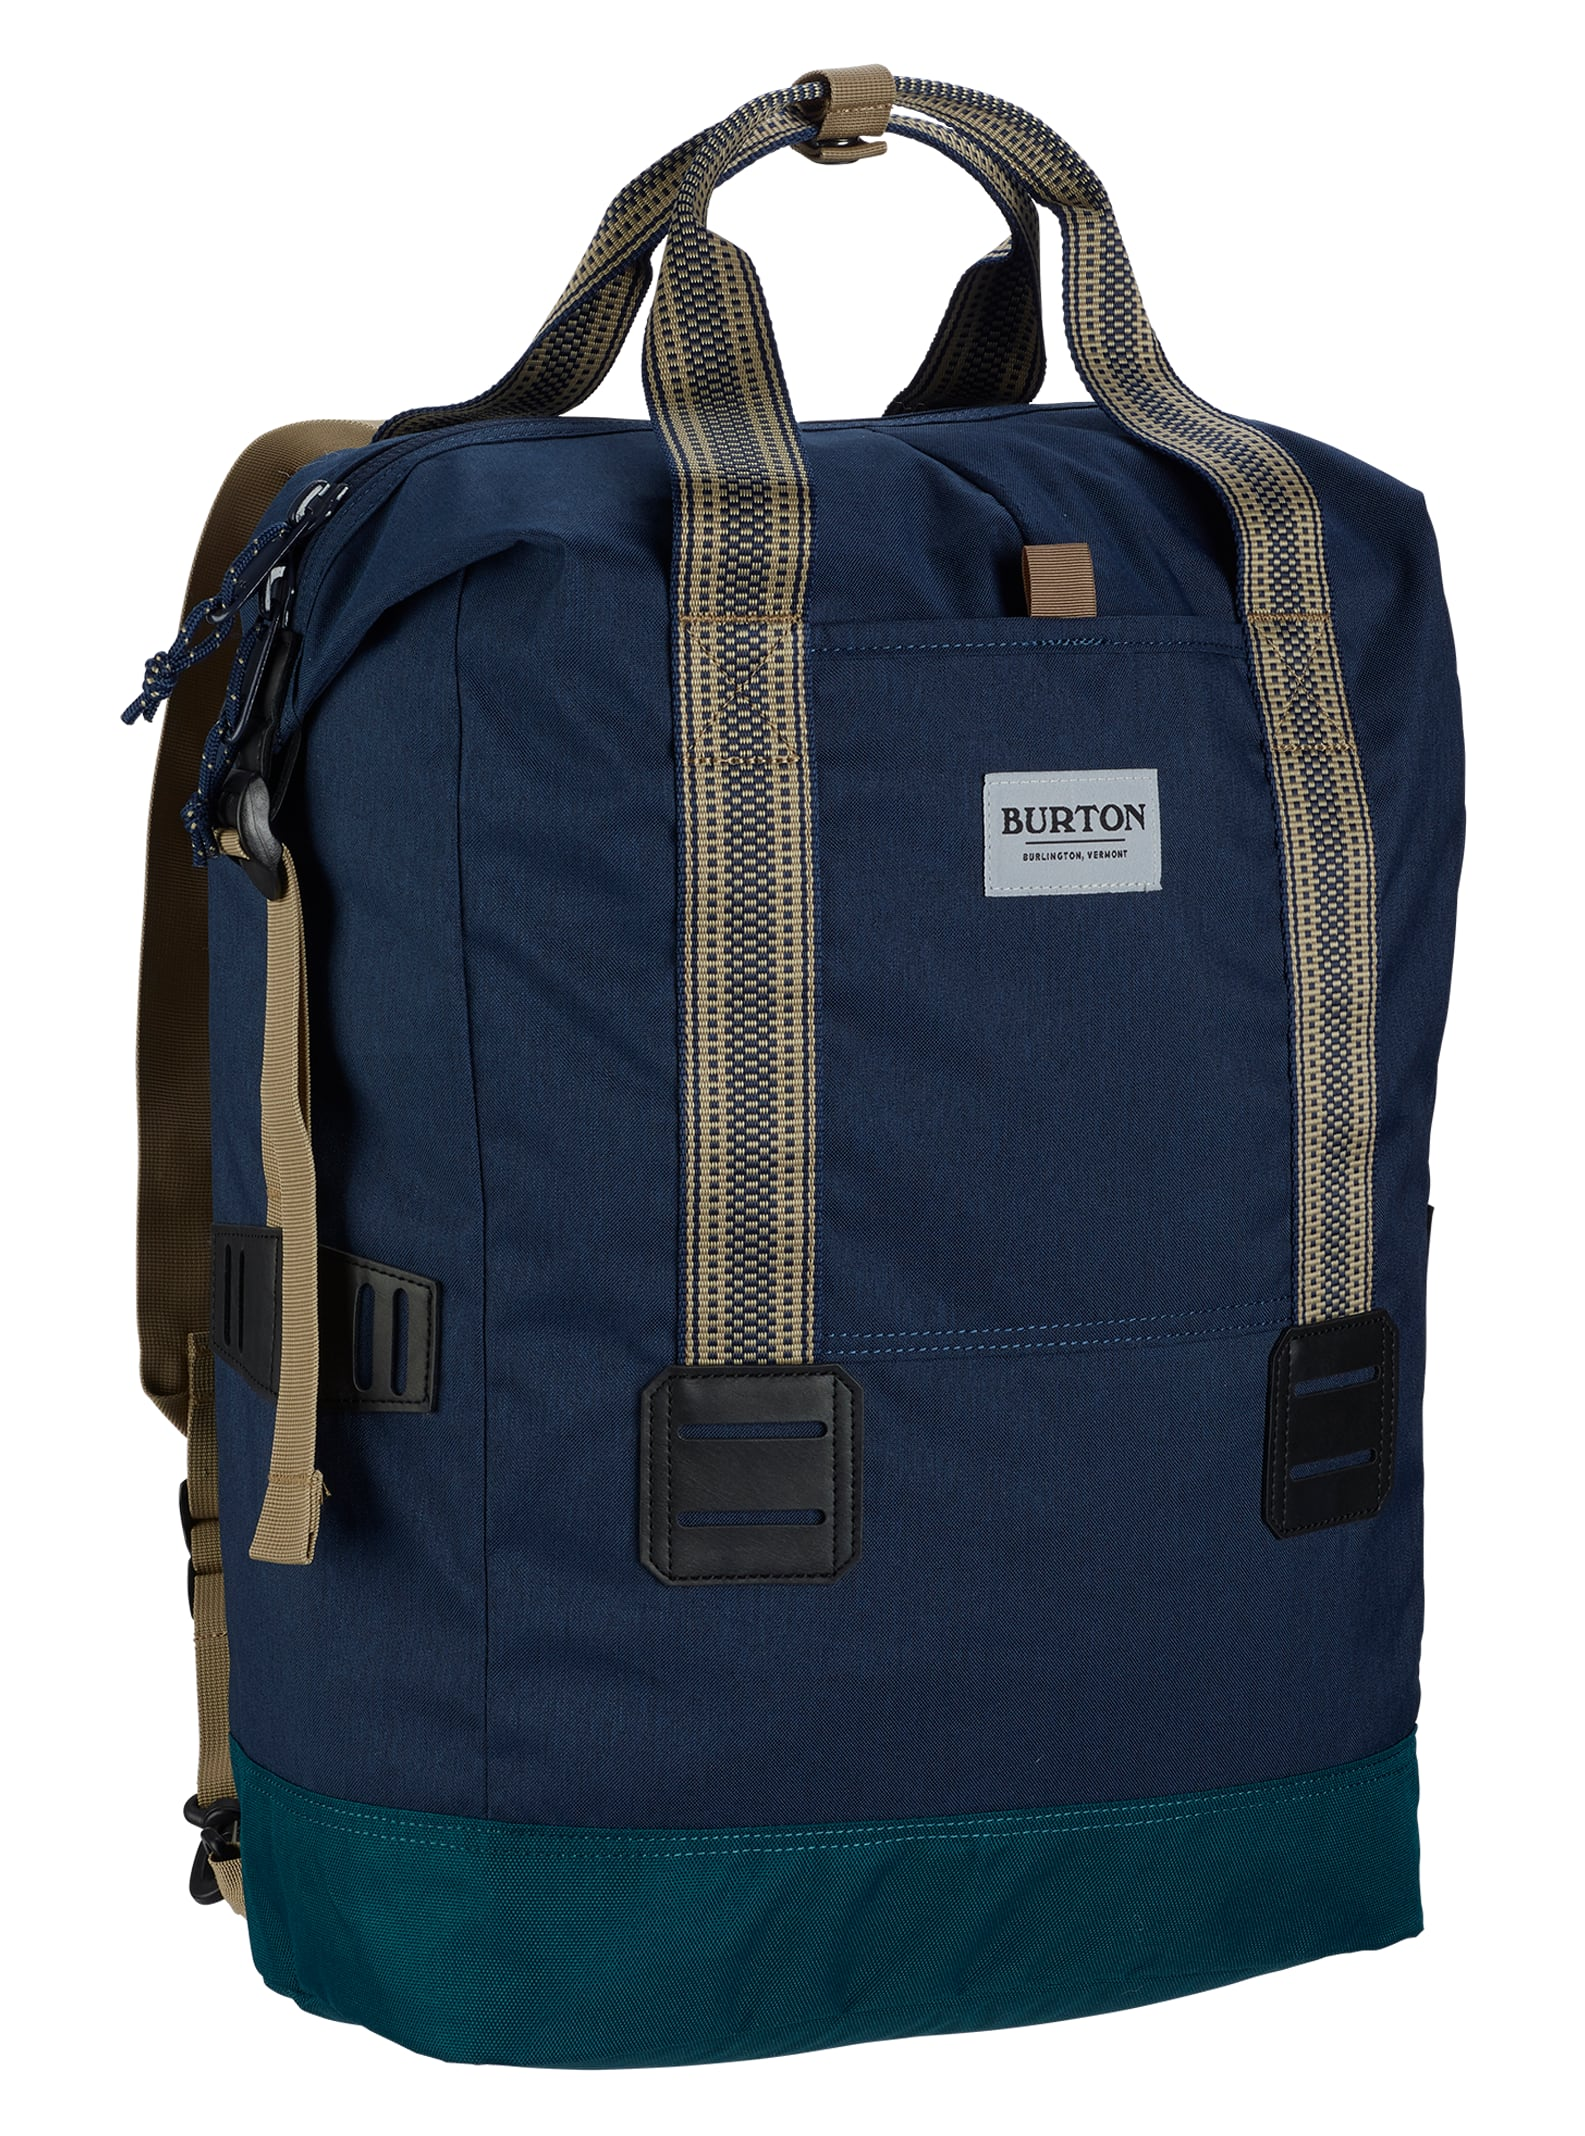 Backpacks | Burton Snowboards AT